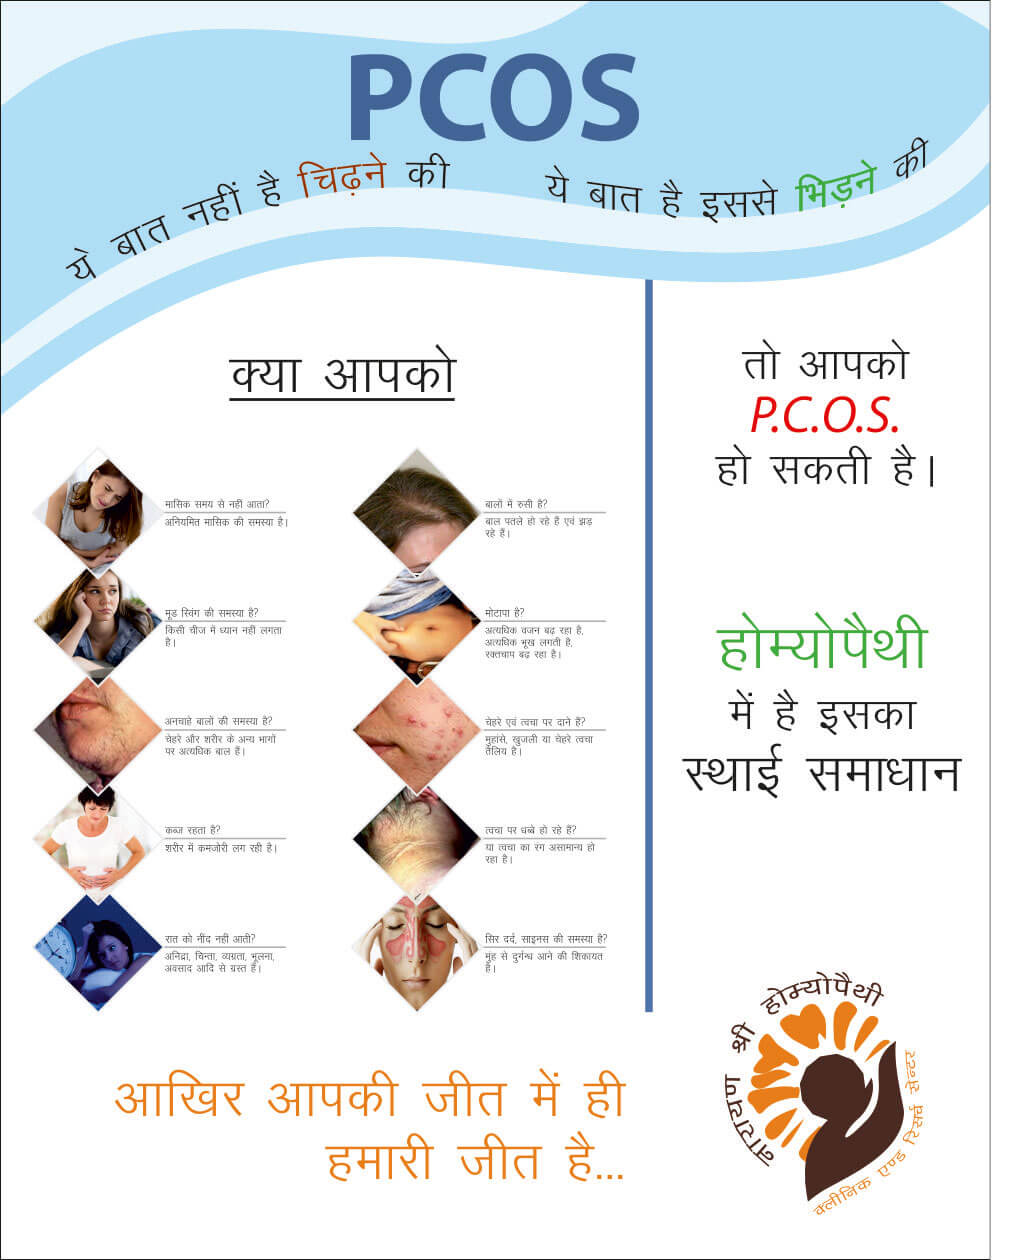 Poster Designing for Social Welfare - Narayan Sri Homeopathic Center